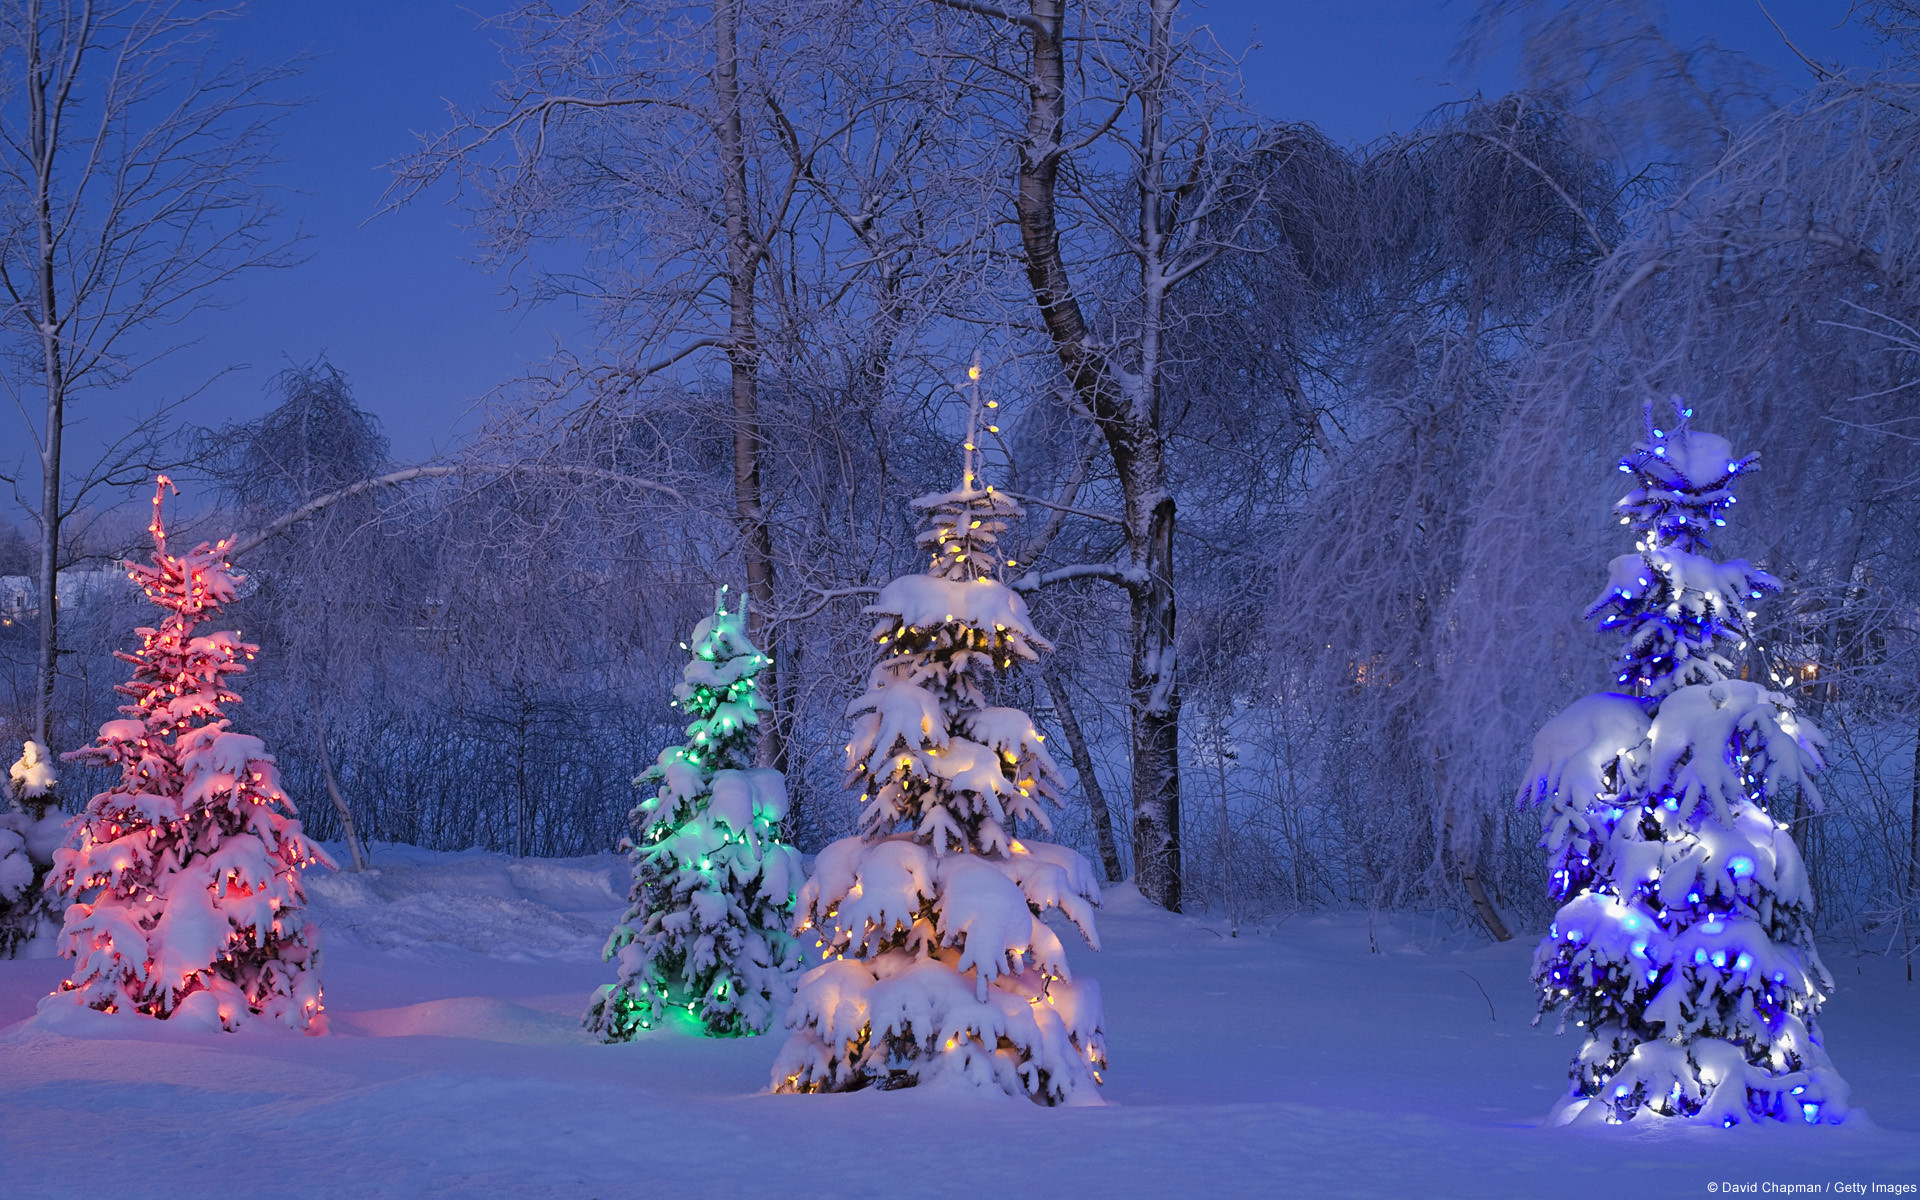 Christmas Wallpaper and Screensavers 60 images